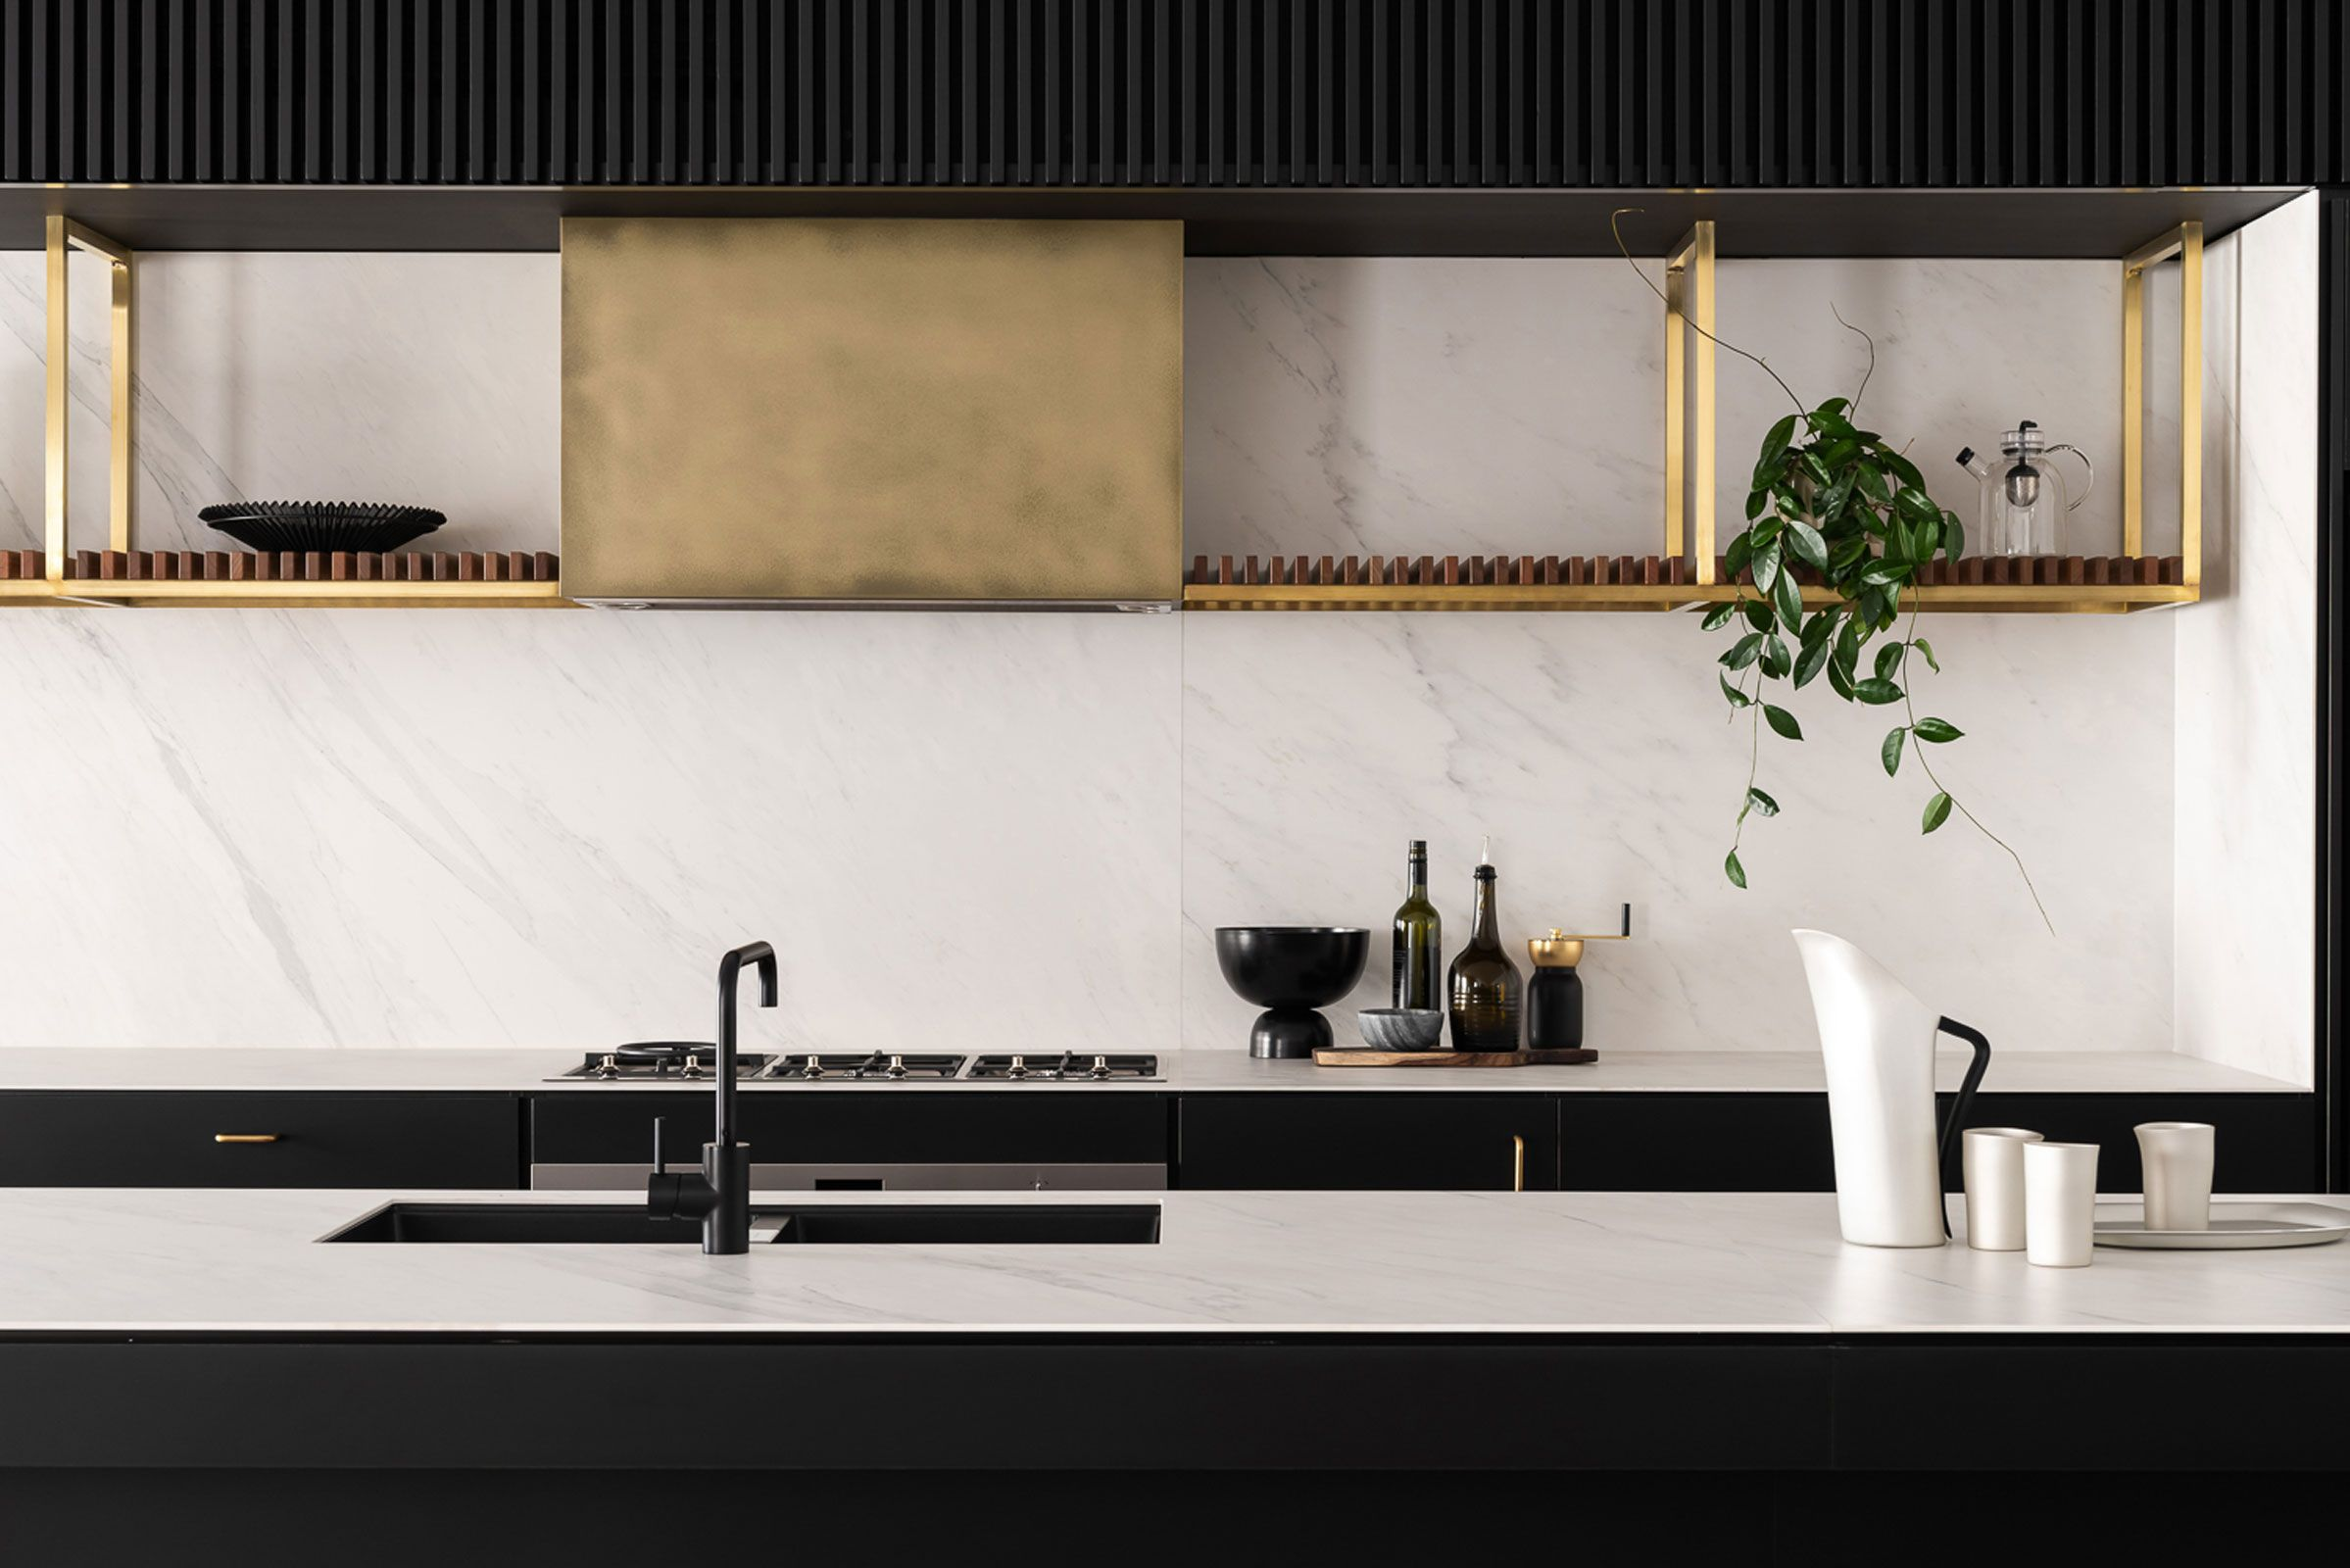 King By David Barr Architects Project Feature Perth Wa 11 29 2019 In 2020 Interior Design Kitchen Latest Kitchen Designs Interior Design Projects